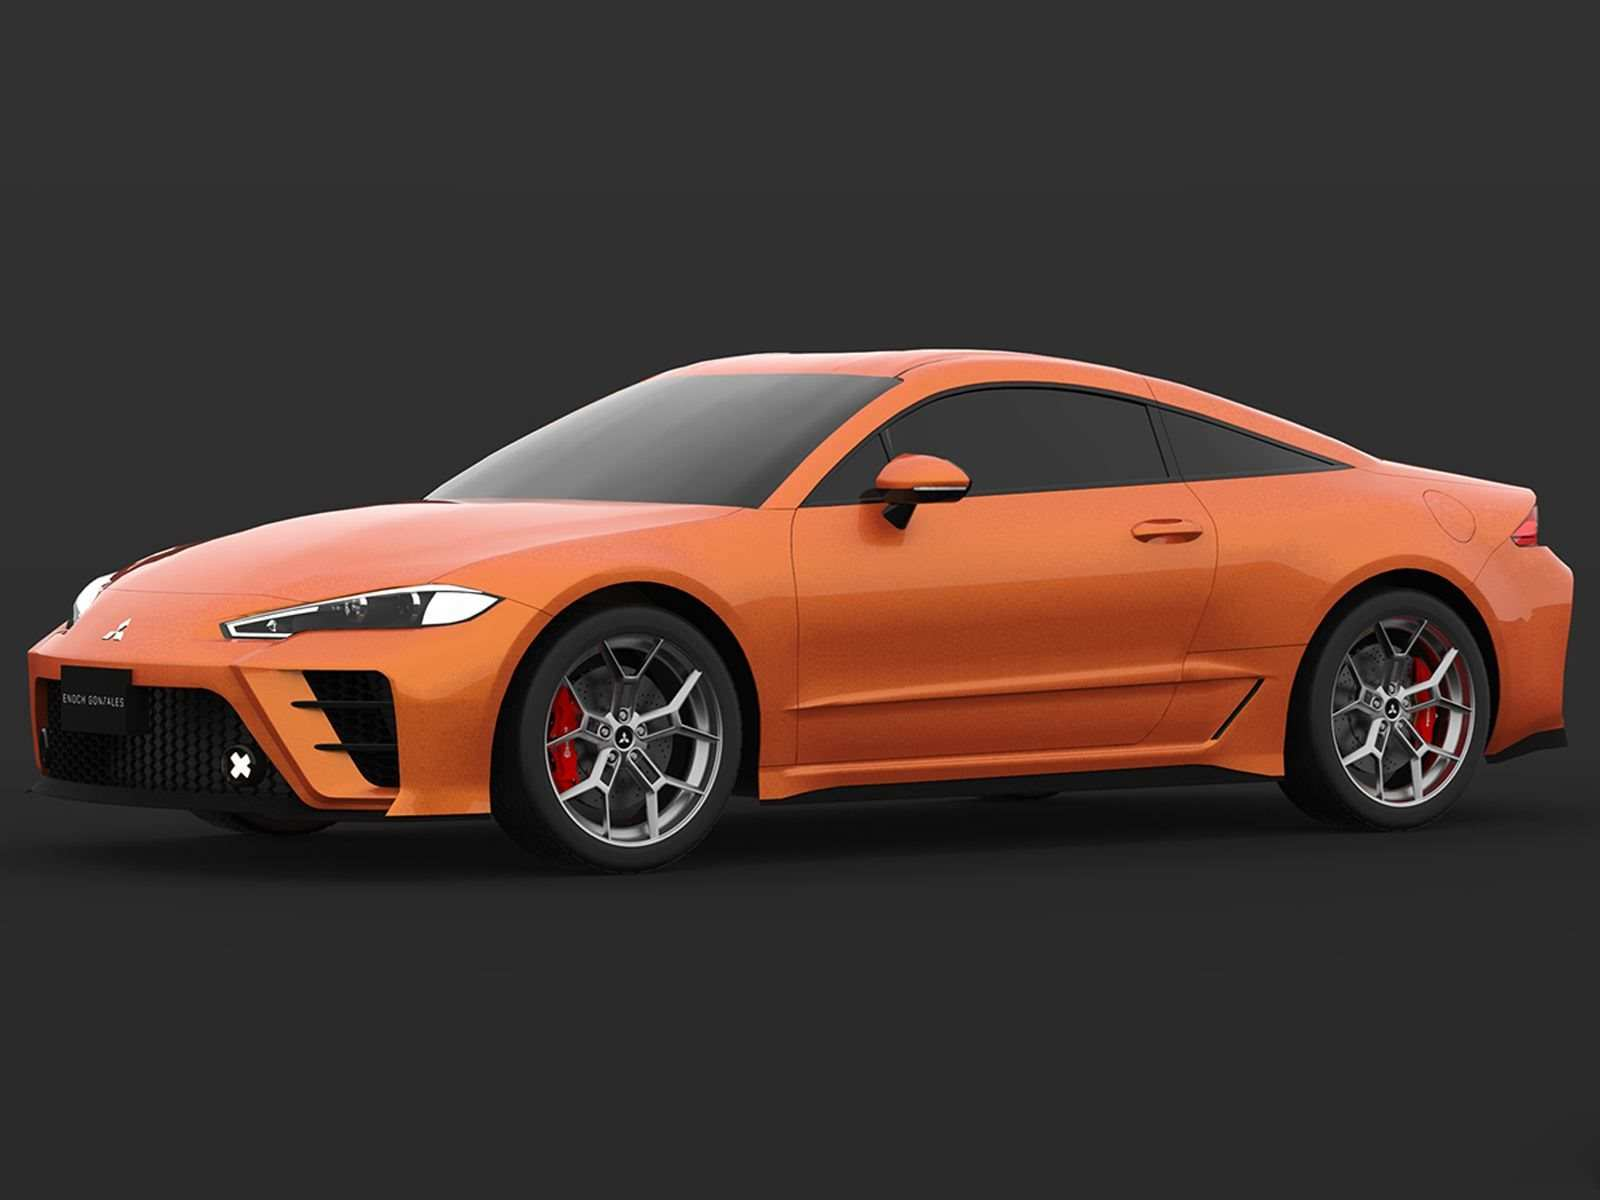 39 Best Review Mitsubishi Eclipse Coupe 2020 Performance with Mitsubishi Eclipse Coupe 2020